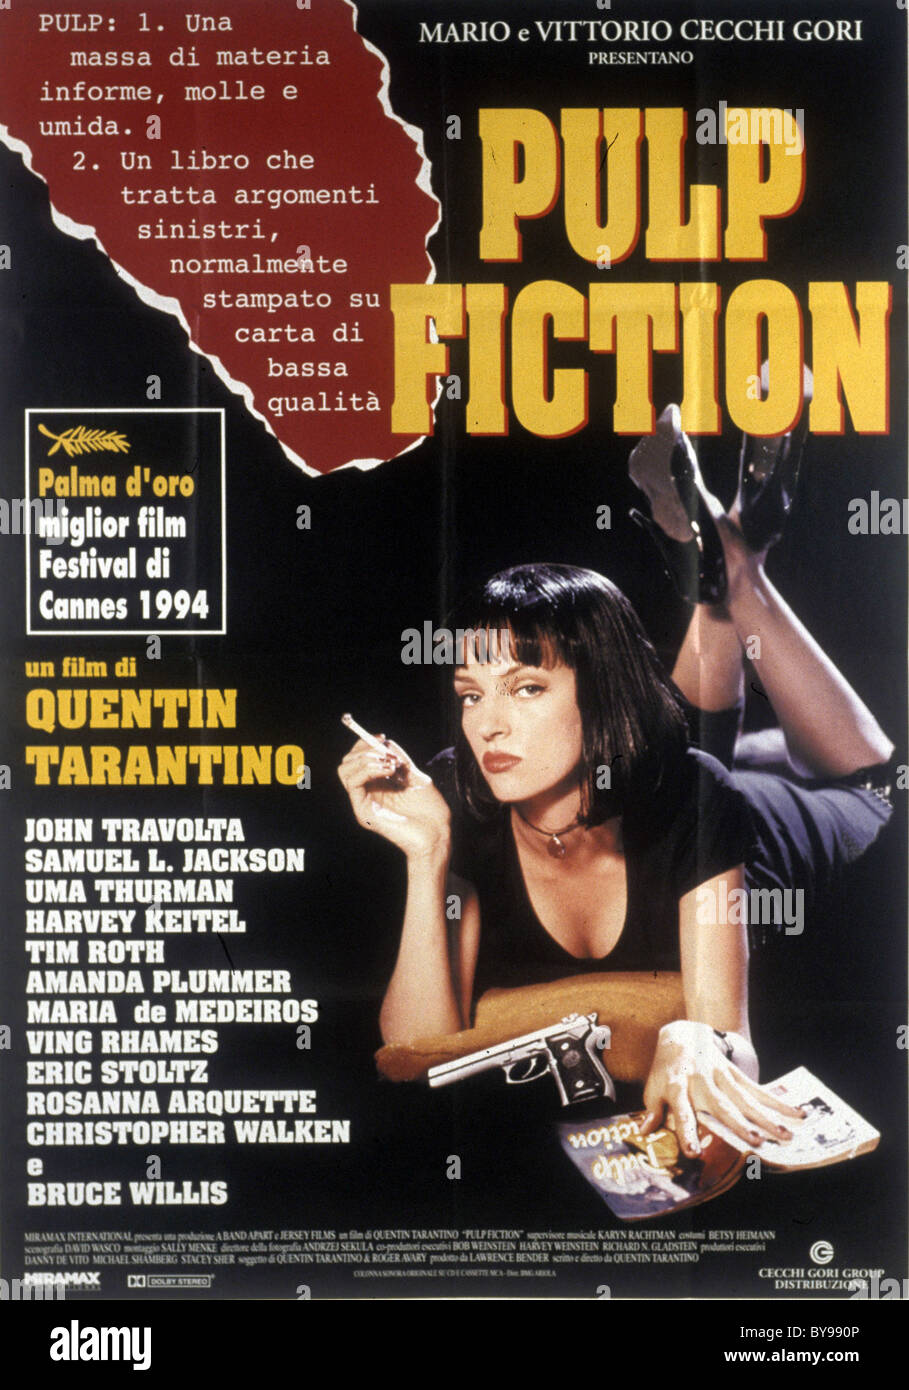 Pulp Fiction  Year : 1994 - USA Director : Quentin Tarantino Uma Thurman  Movie poster  (It)  Golden Palm Cannes - Stock Image